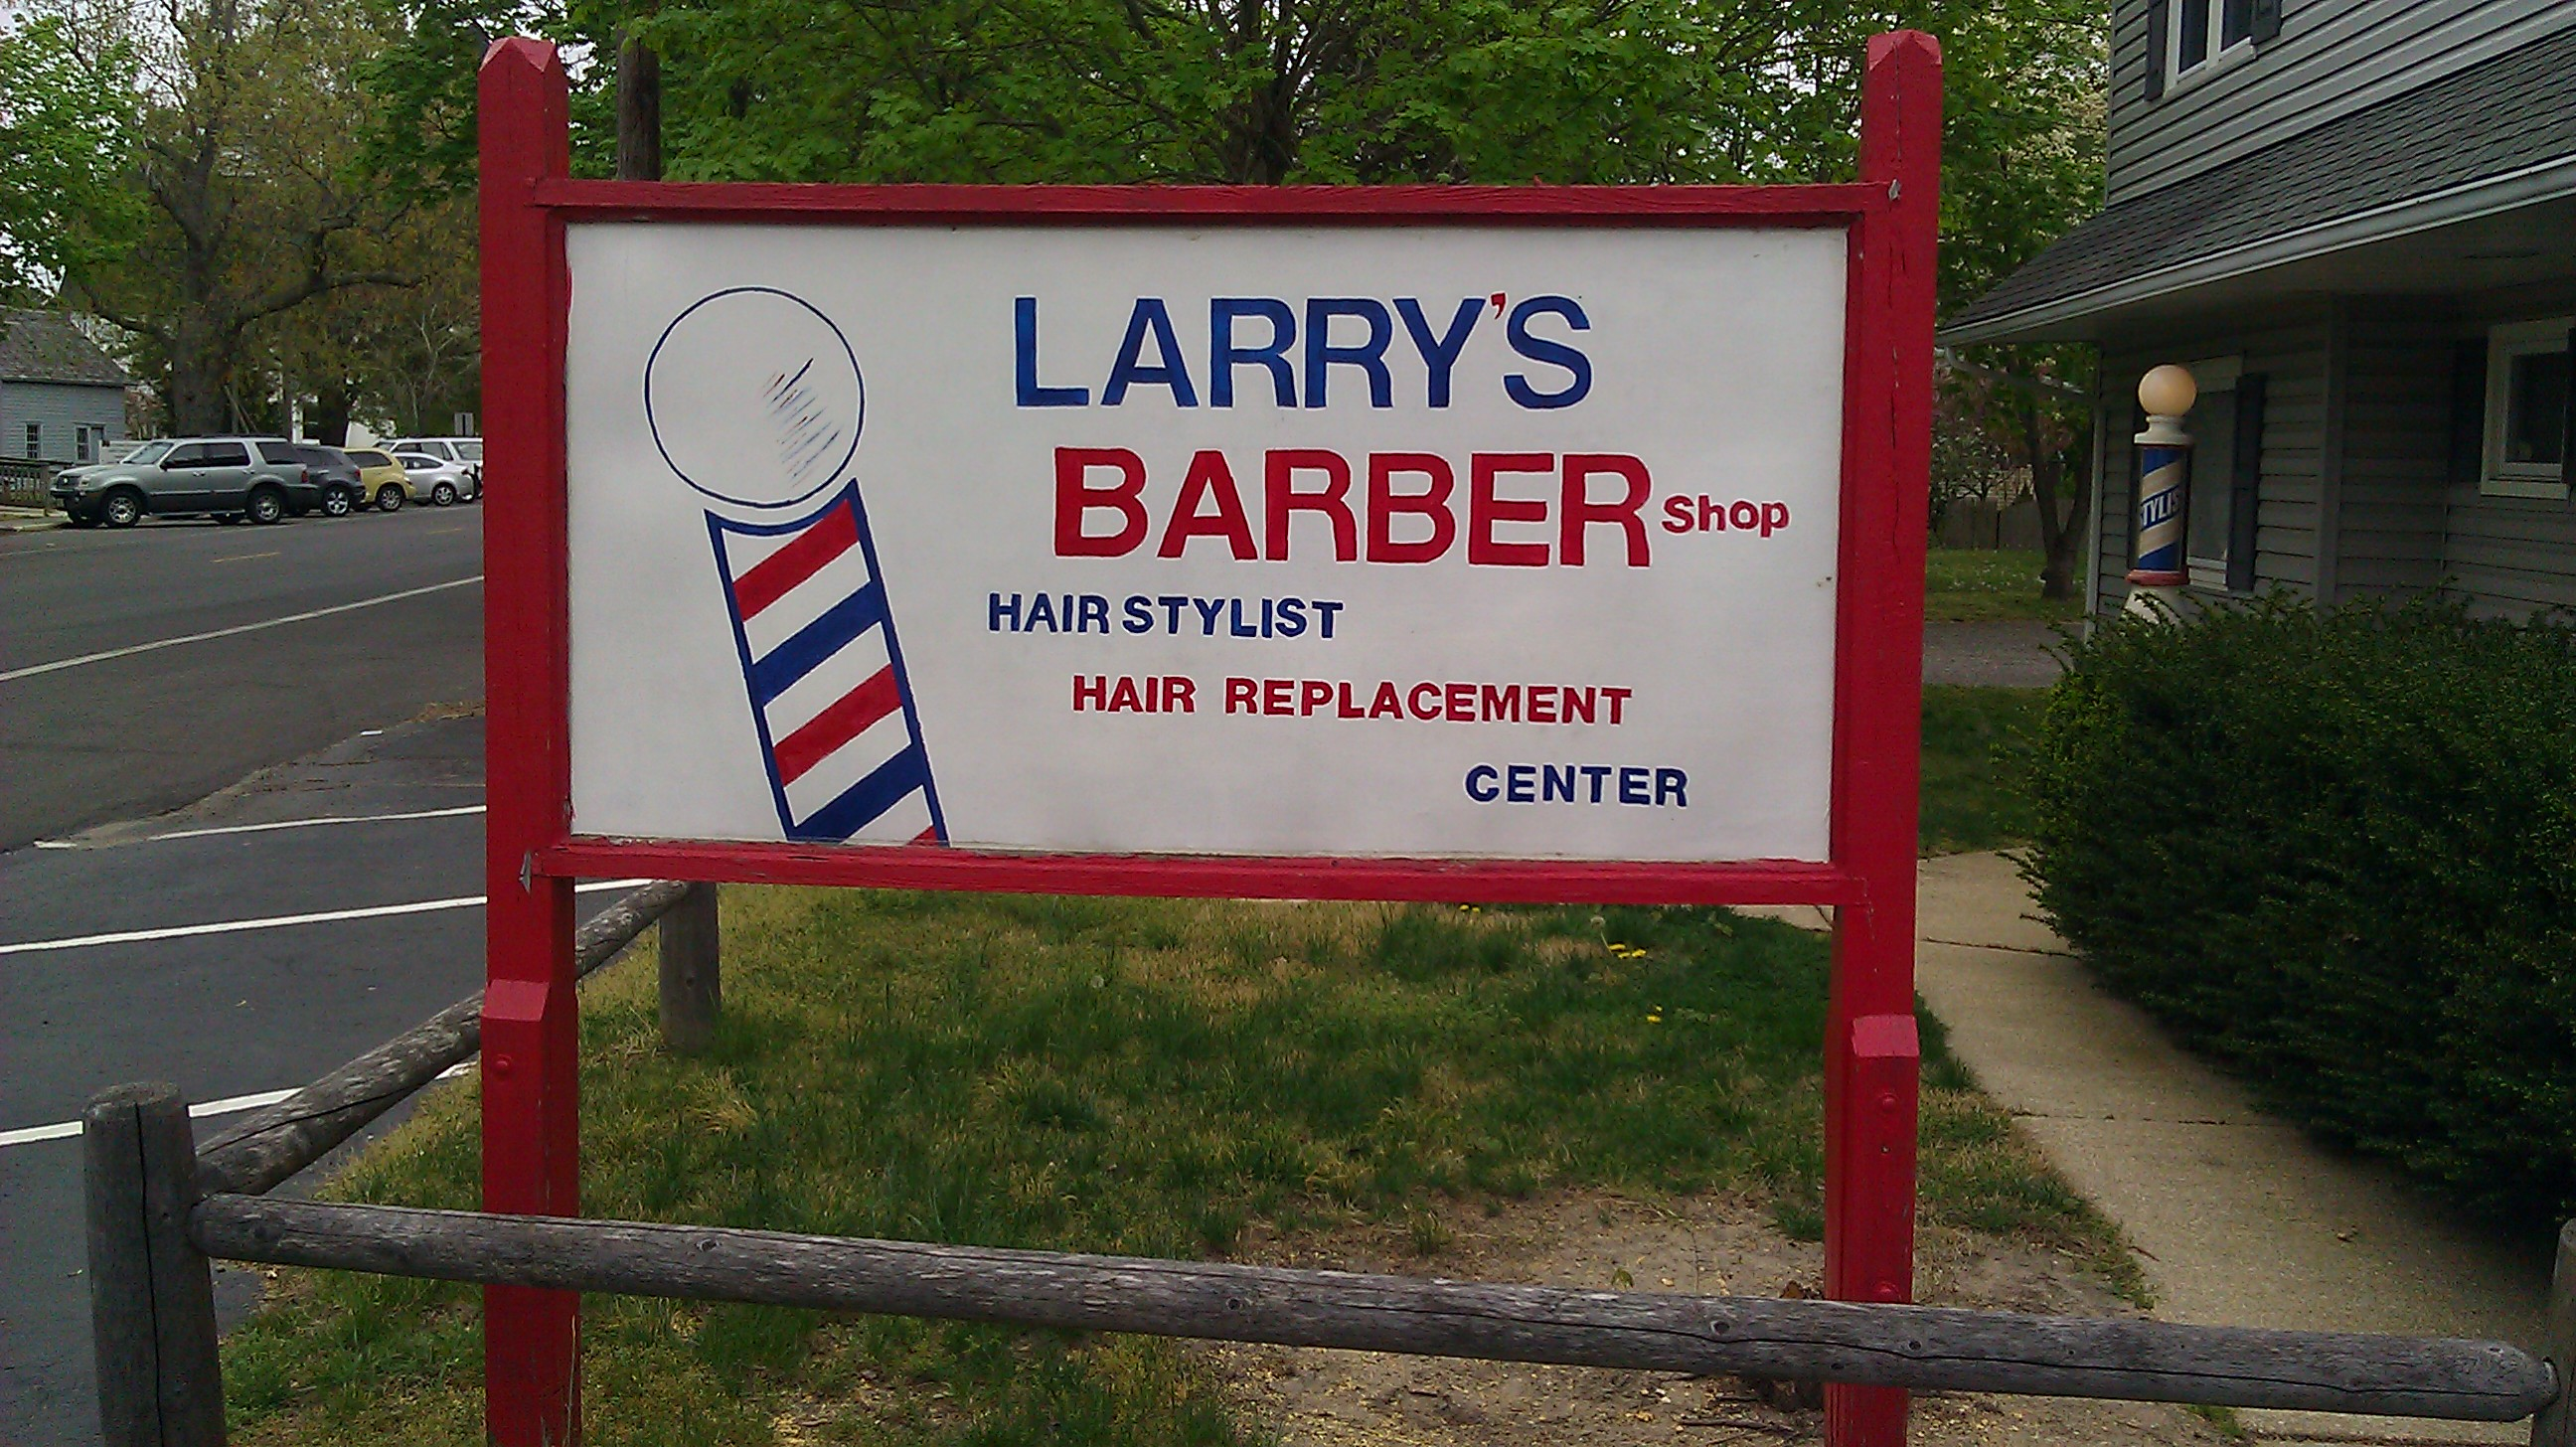 Barber Shop Grapevine : ... Stores Online Magazine Larry?s Barber Shop in Manahawkin